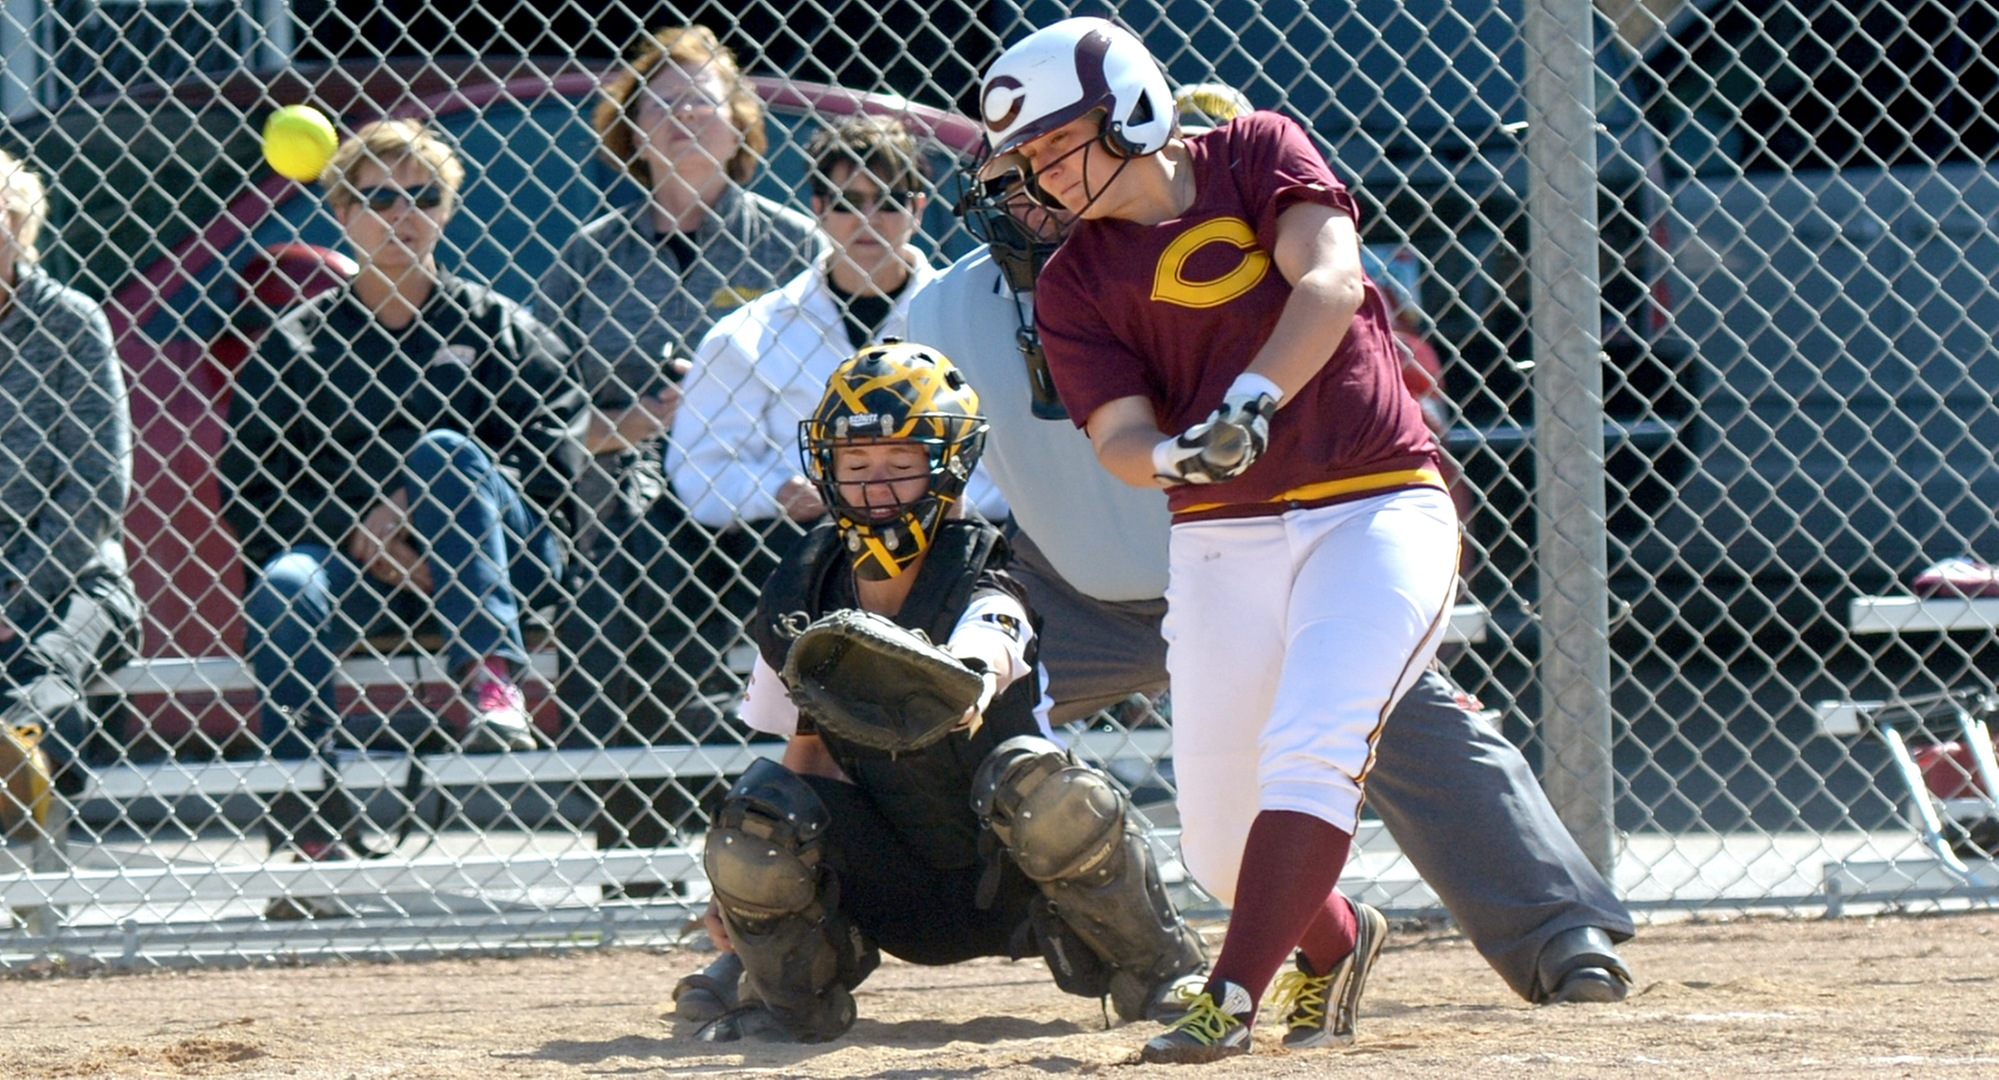 Sophomore Nicole Johannes was one of eight Cobbers to have a hit on the final day in Florida as CC split their two games.